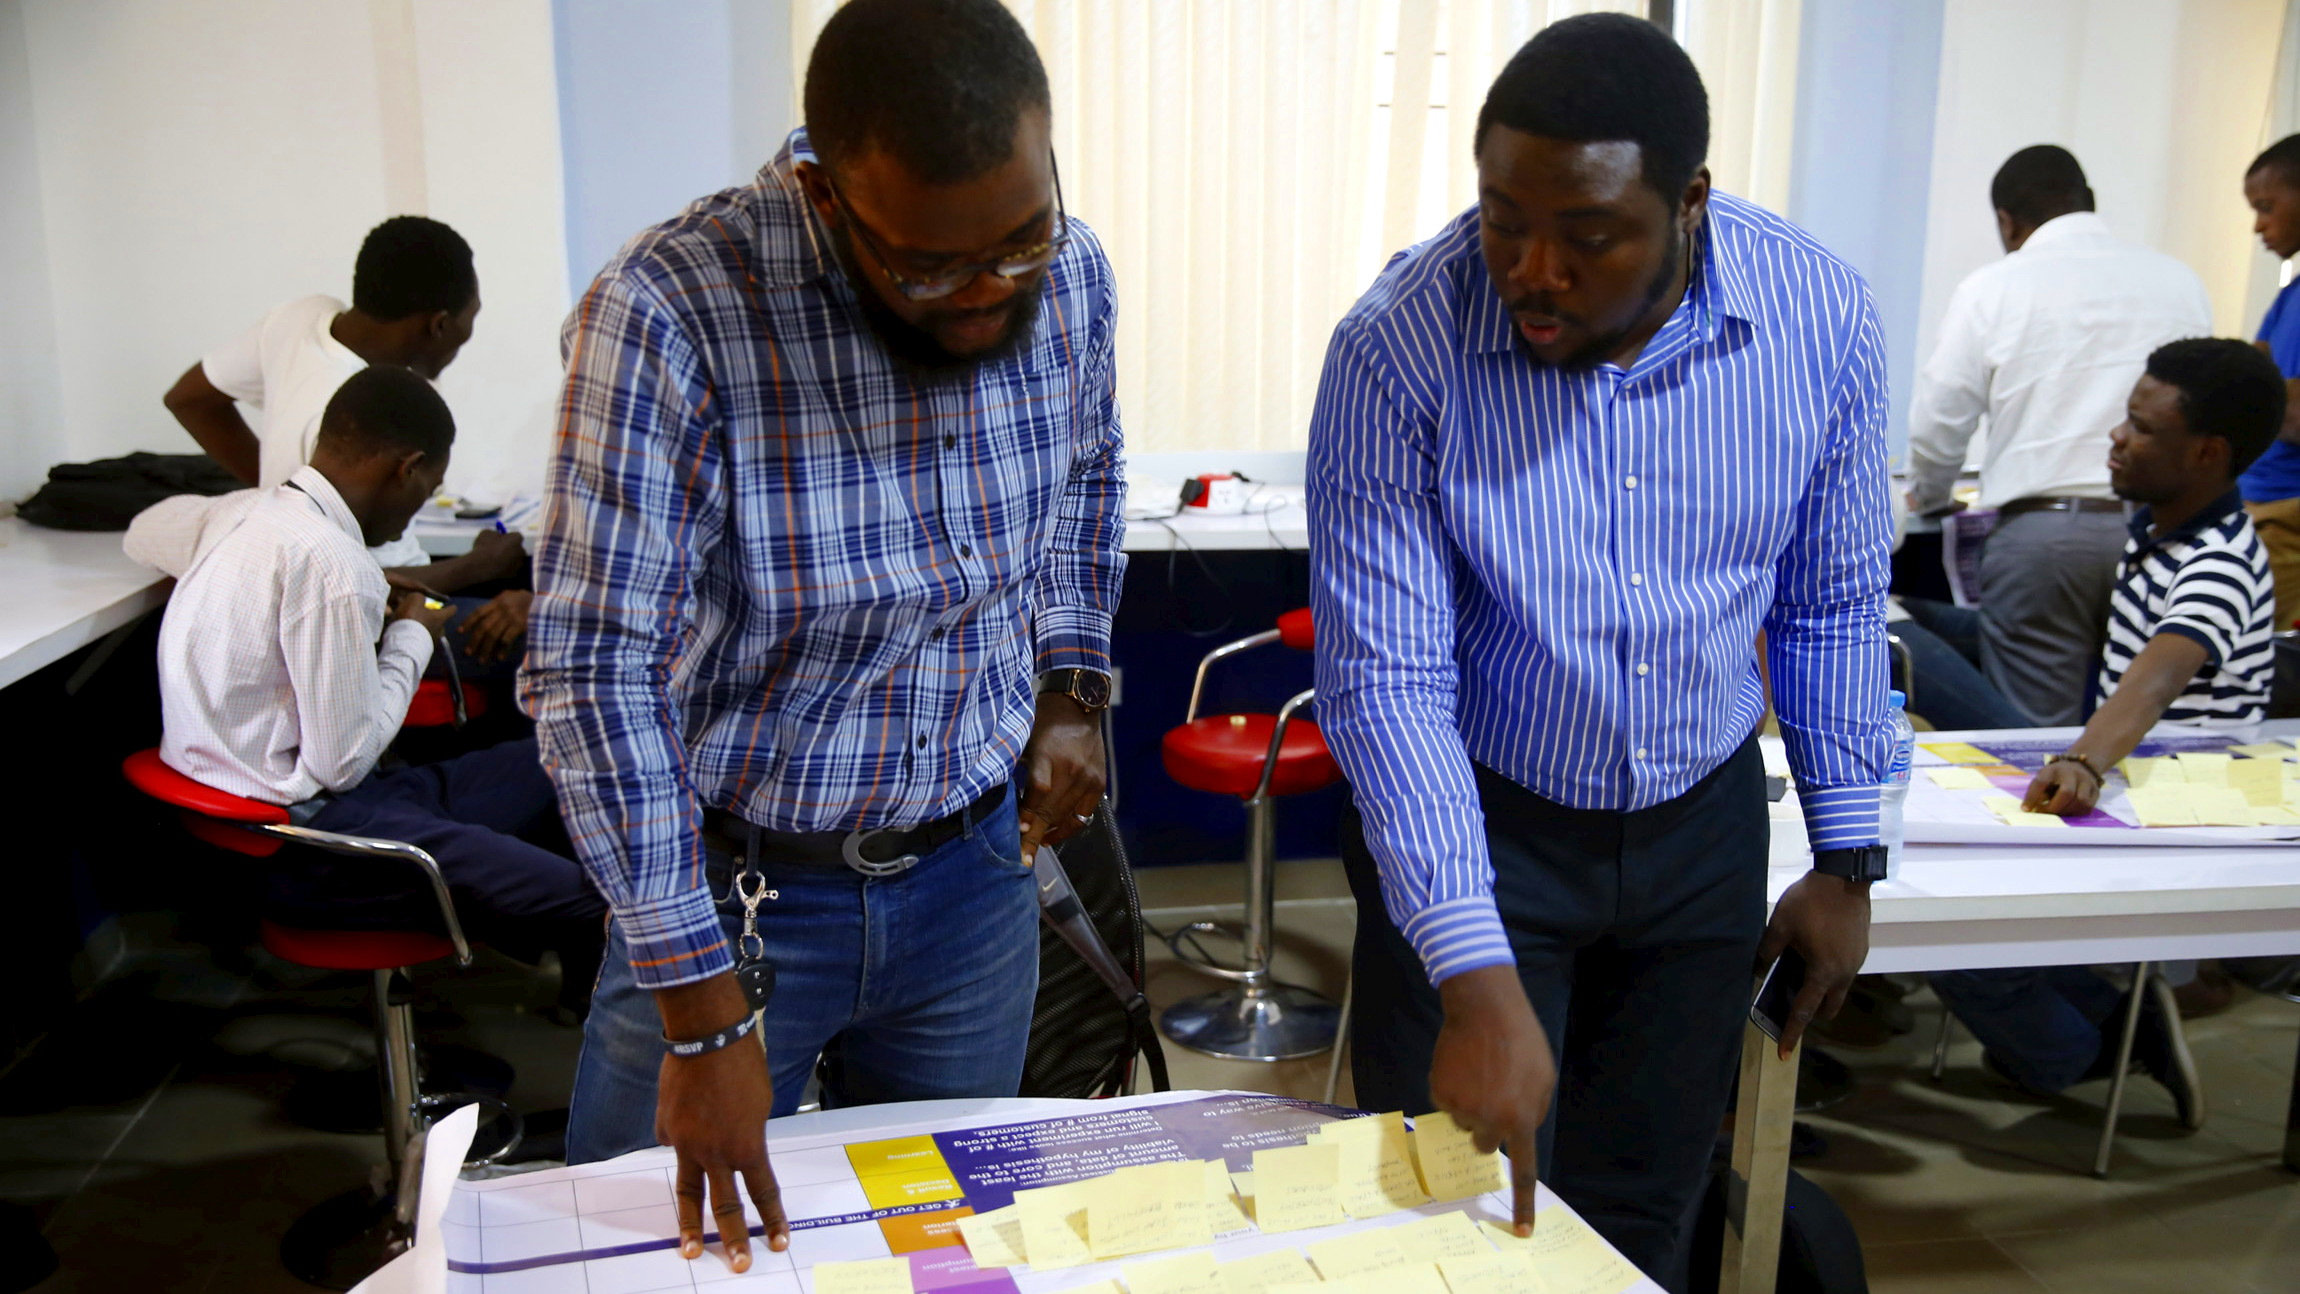 Software developers work at the Information Technology Developers Entrepreneurship Accelerator (iDEA) hub in the Yaba district in Lagos June 25, 2015. At first glance, Yaba is like many other parts of Nigeria's sprawling commercial capital: a cacophony of car horns and shouting street vendors, mingling with exhaust fumes and the occasional stench of sewage. But in between the run-down buildings in this seemingly inauspicious part of Lagos, a city of around 21 million, tech start-ups are taking root and creating a buzz that is drawing international venture capitalists and more established digital firms. Picture taken June 25, 2015.